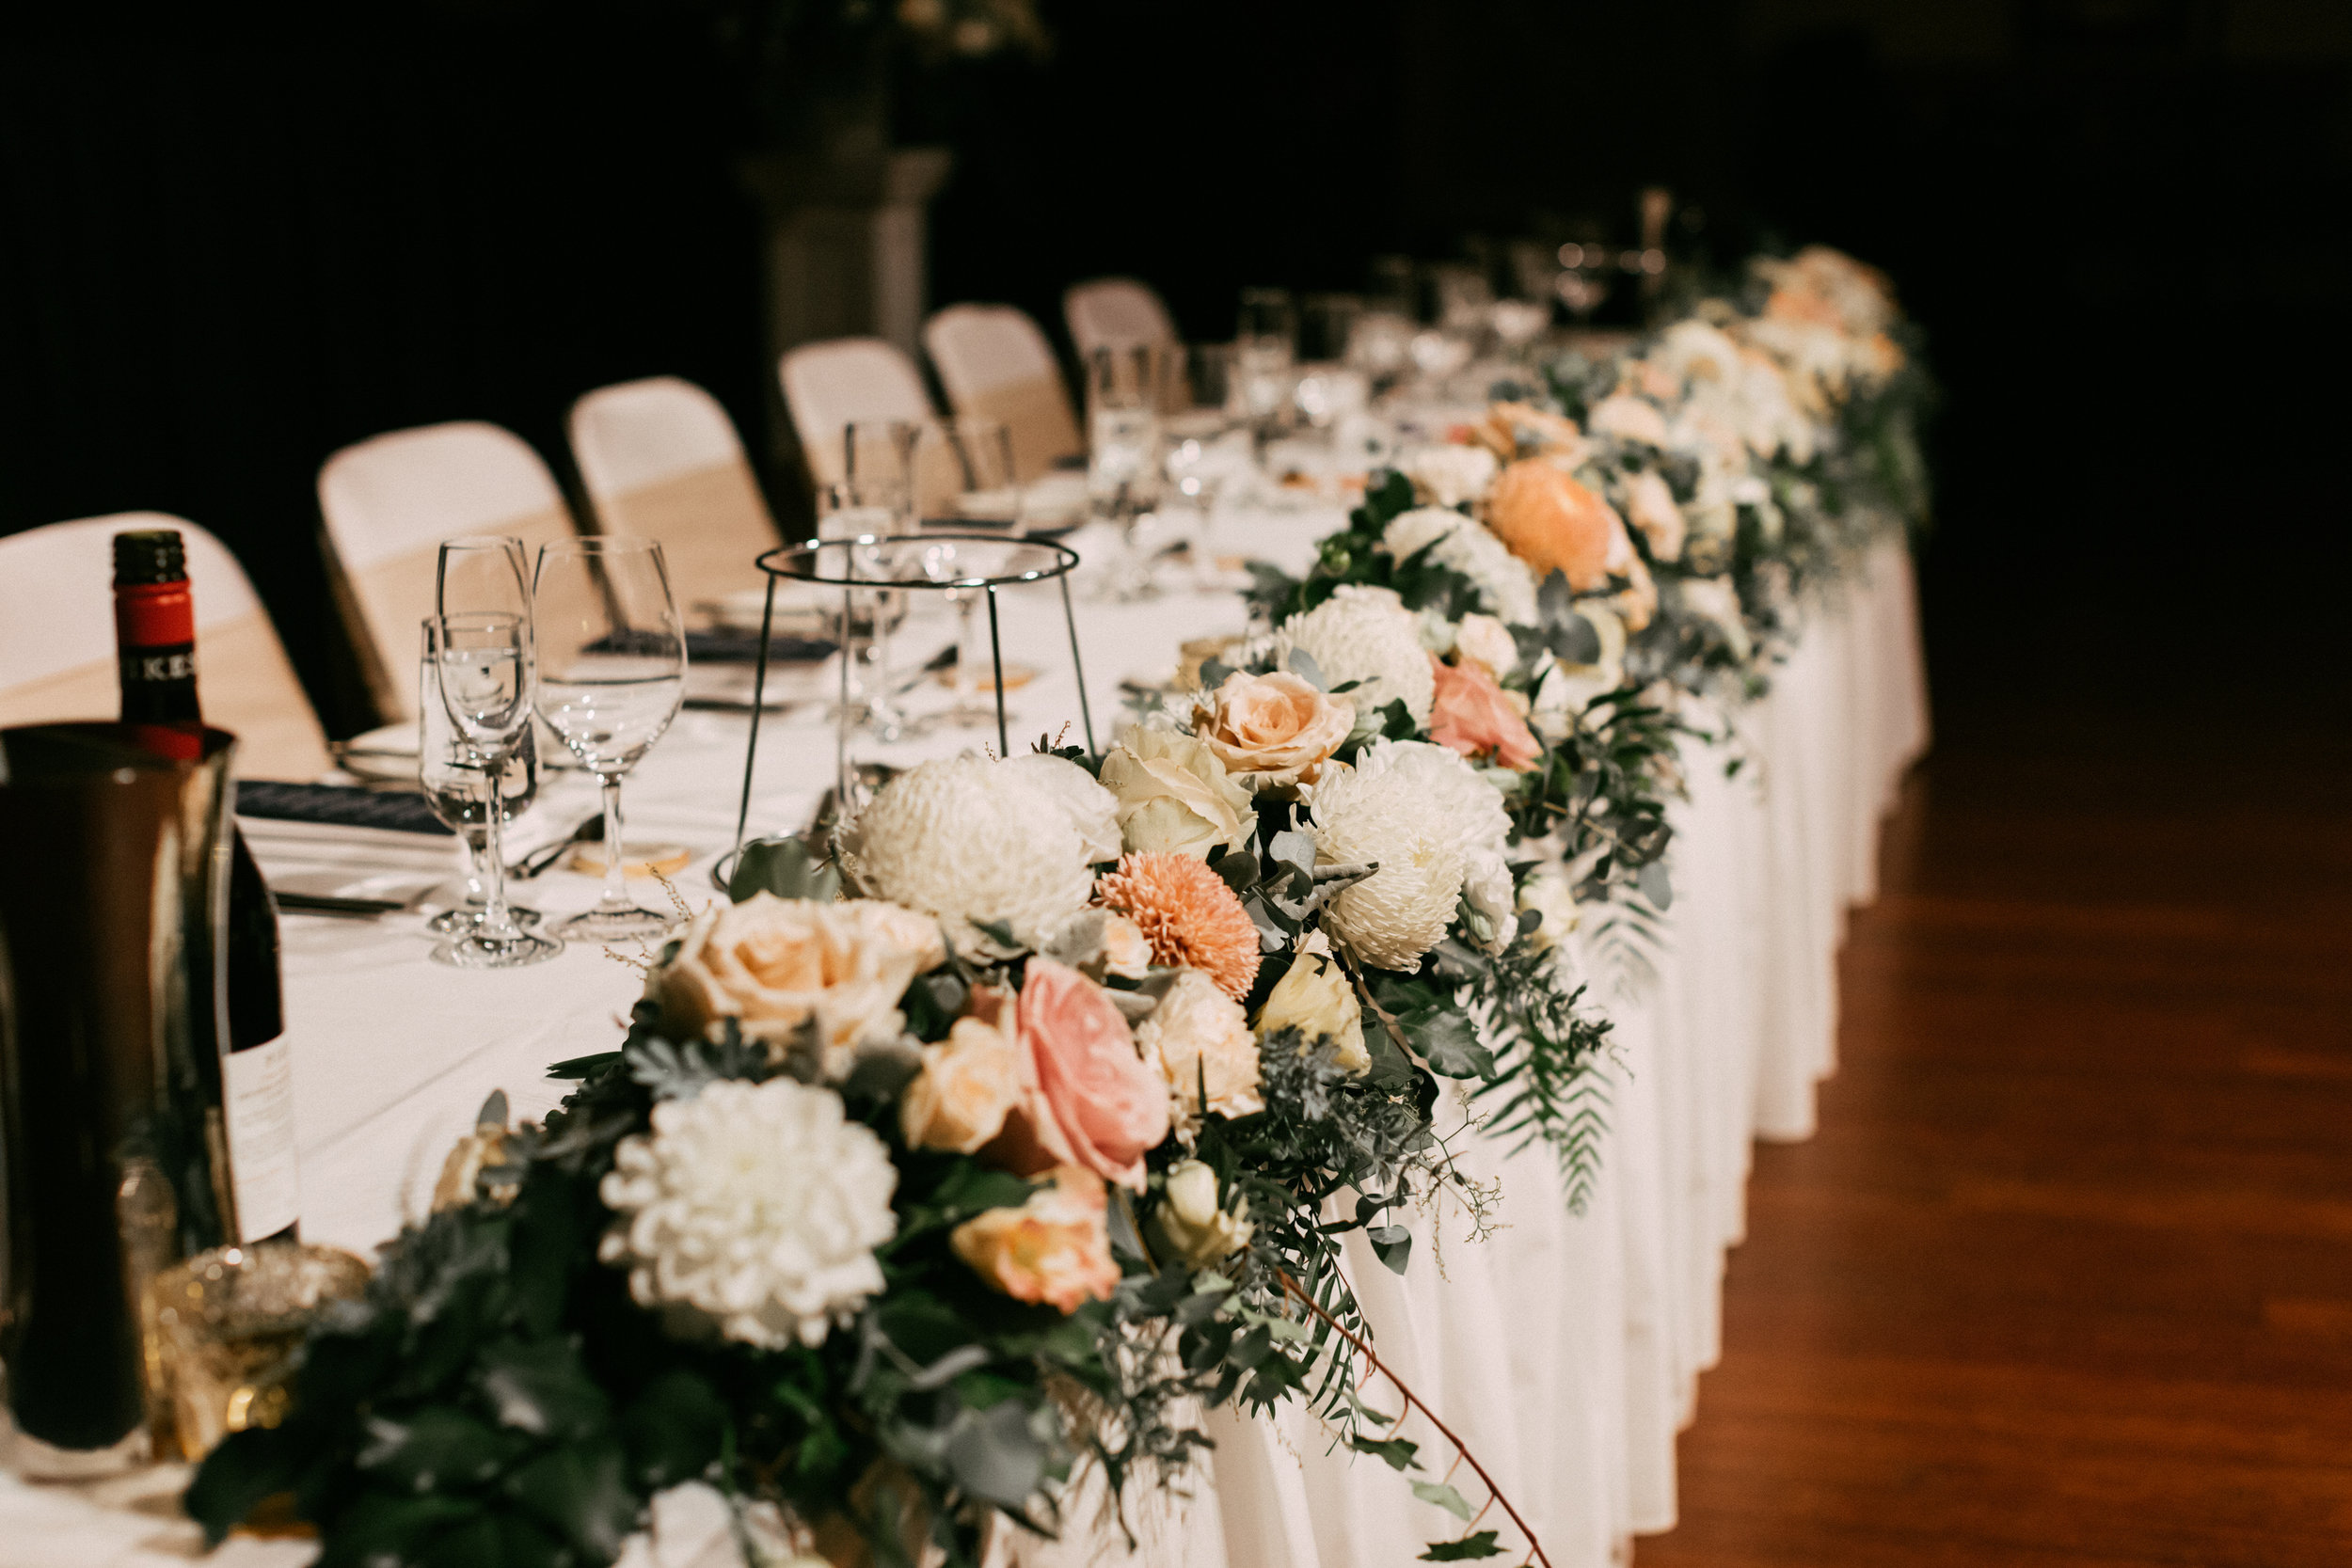 Adelaide Wedding 2019 134.jpg